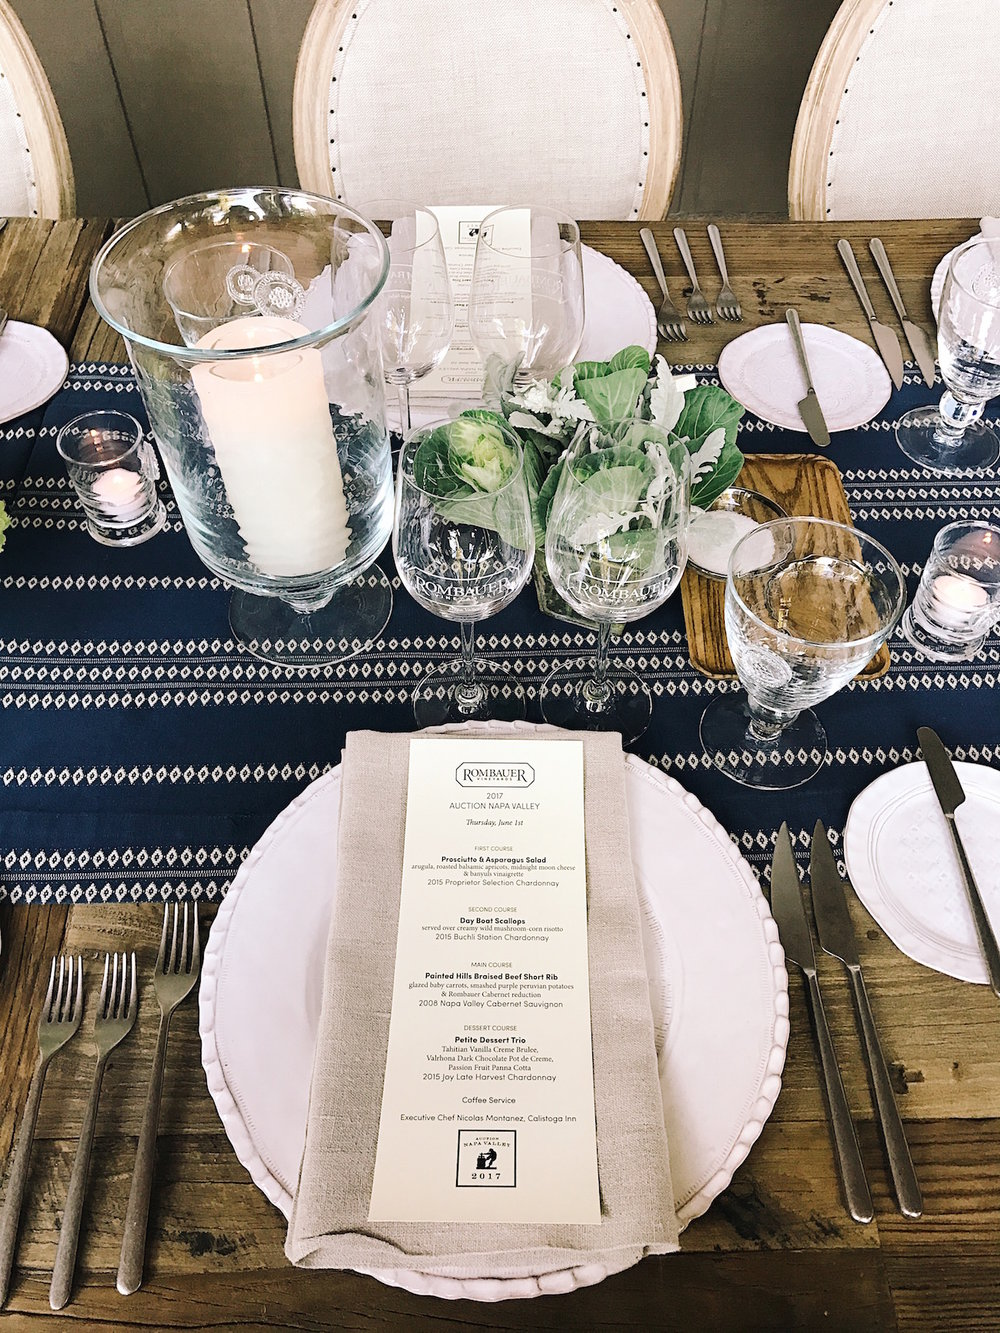 KMI Blog | A Weekend In St. Helena with Rombauer Vineyards